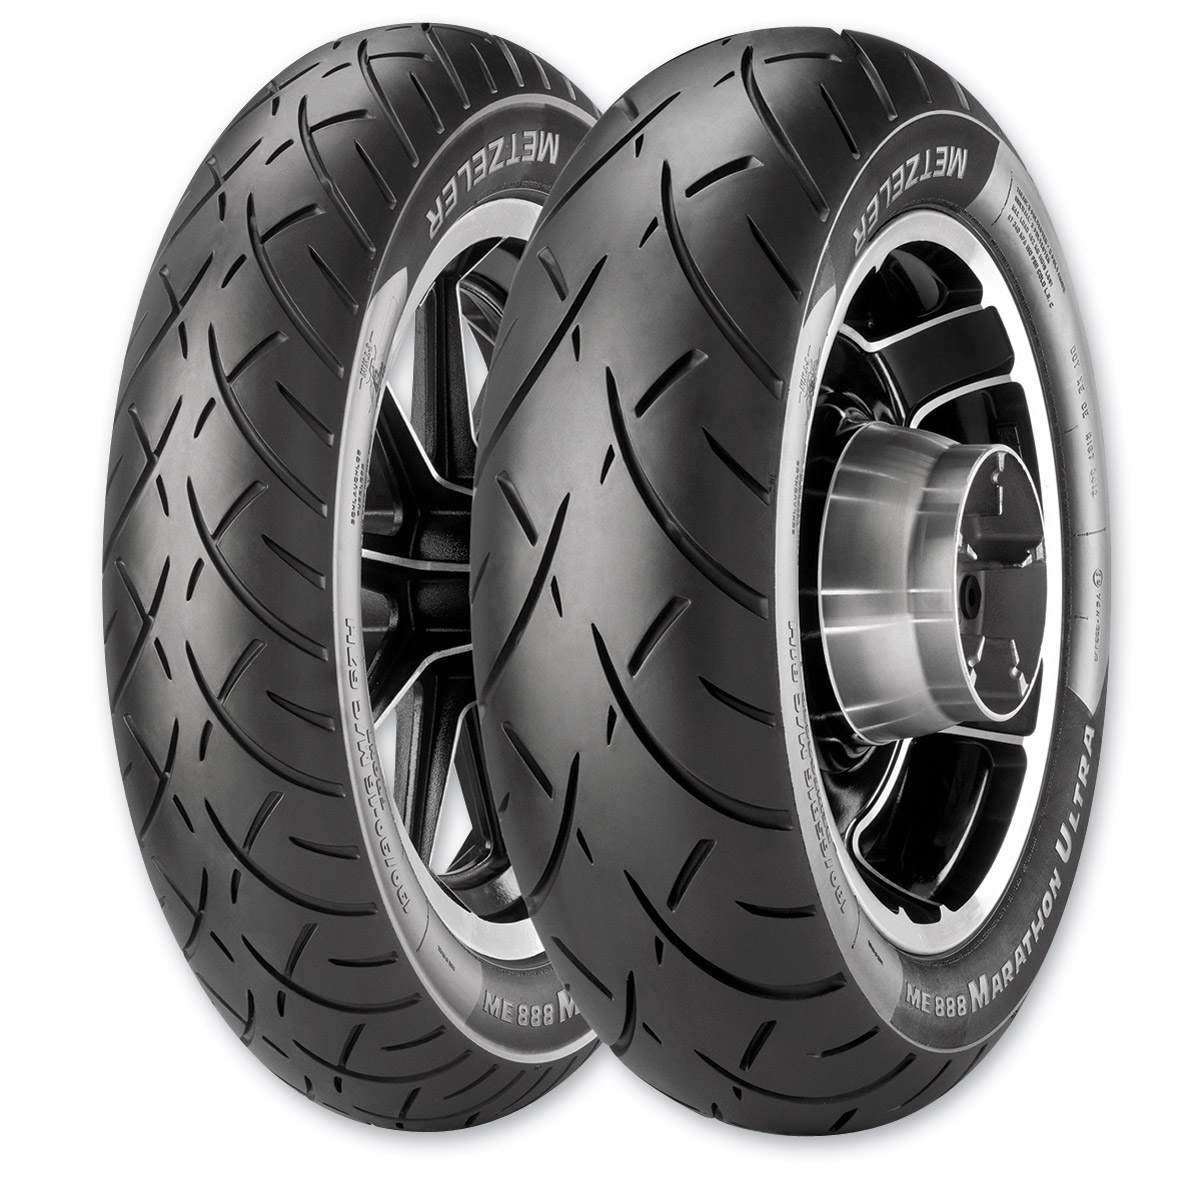 Metzeler ME888 MT90B16 Rear Tire